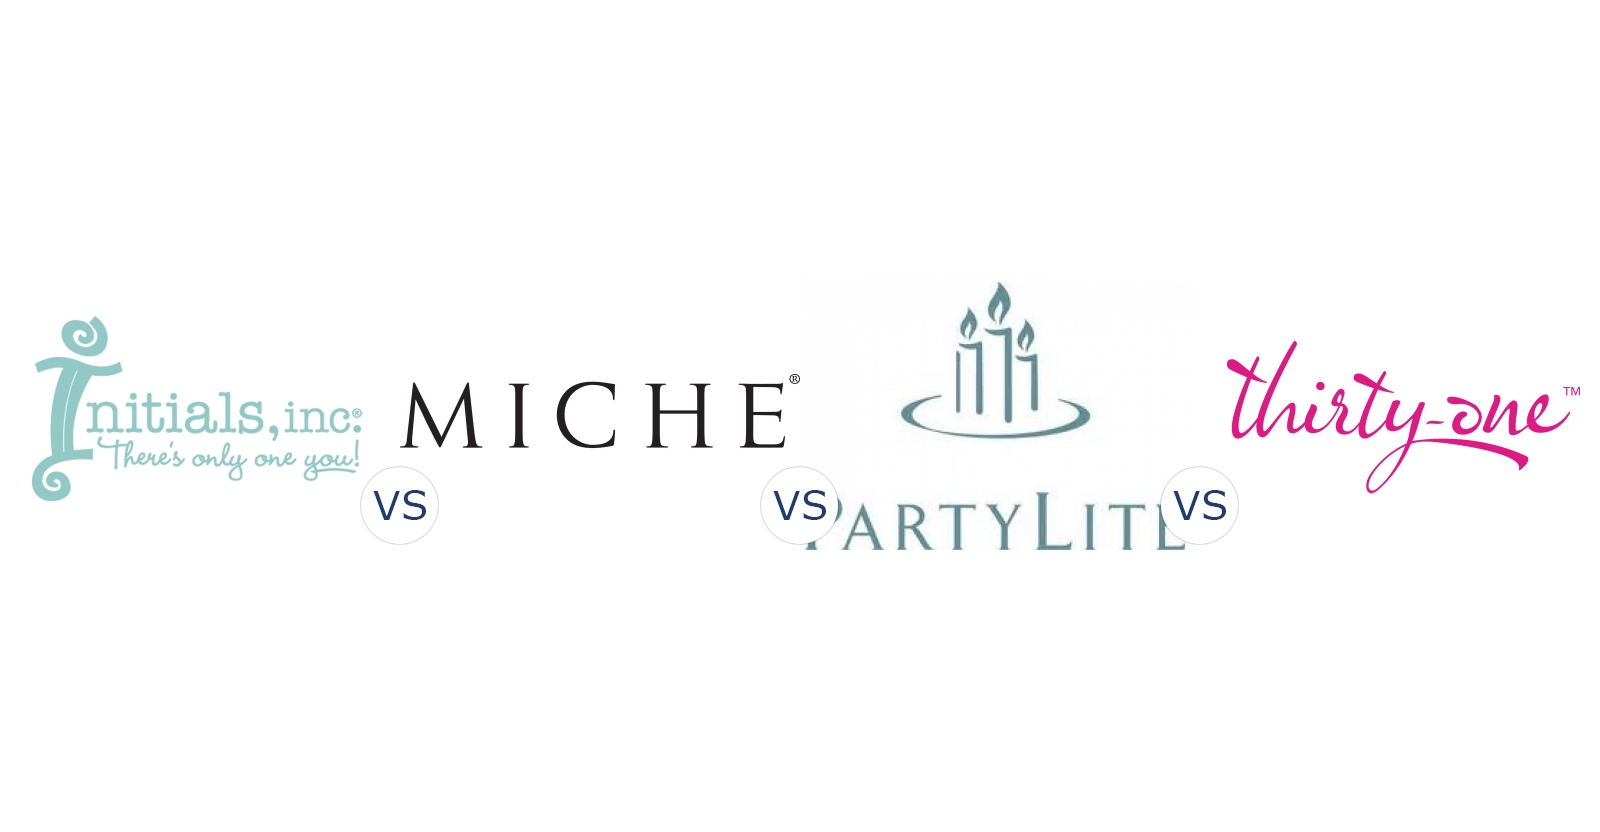 Initials Inc. vs. Miche Bags vs. PartyLite vs. Thirty One Gifts